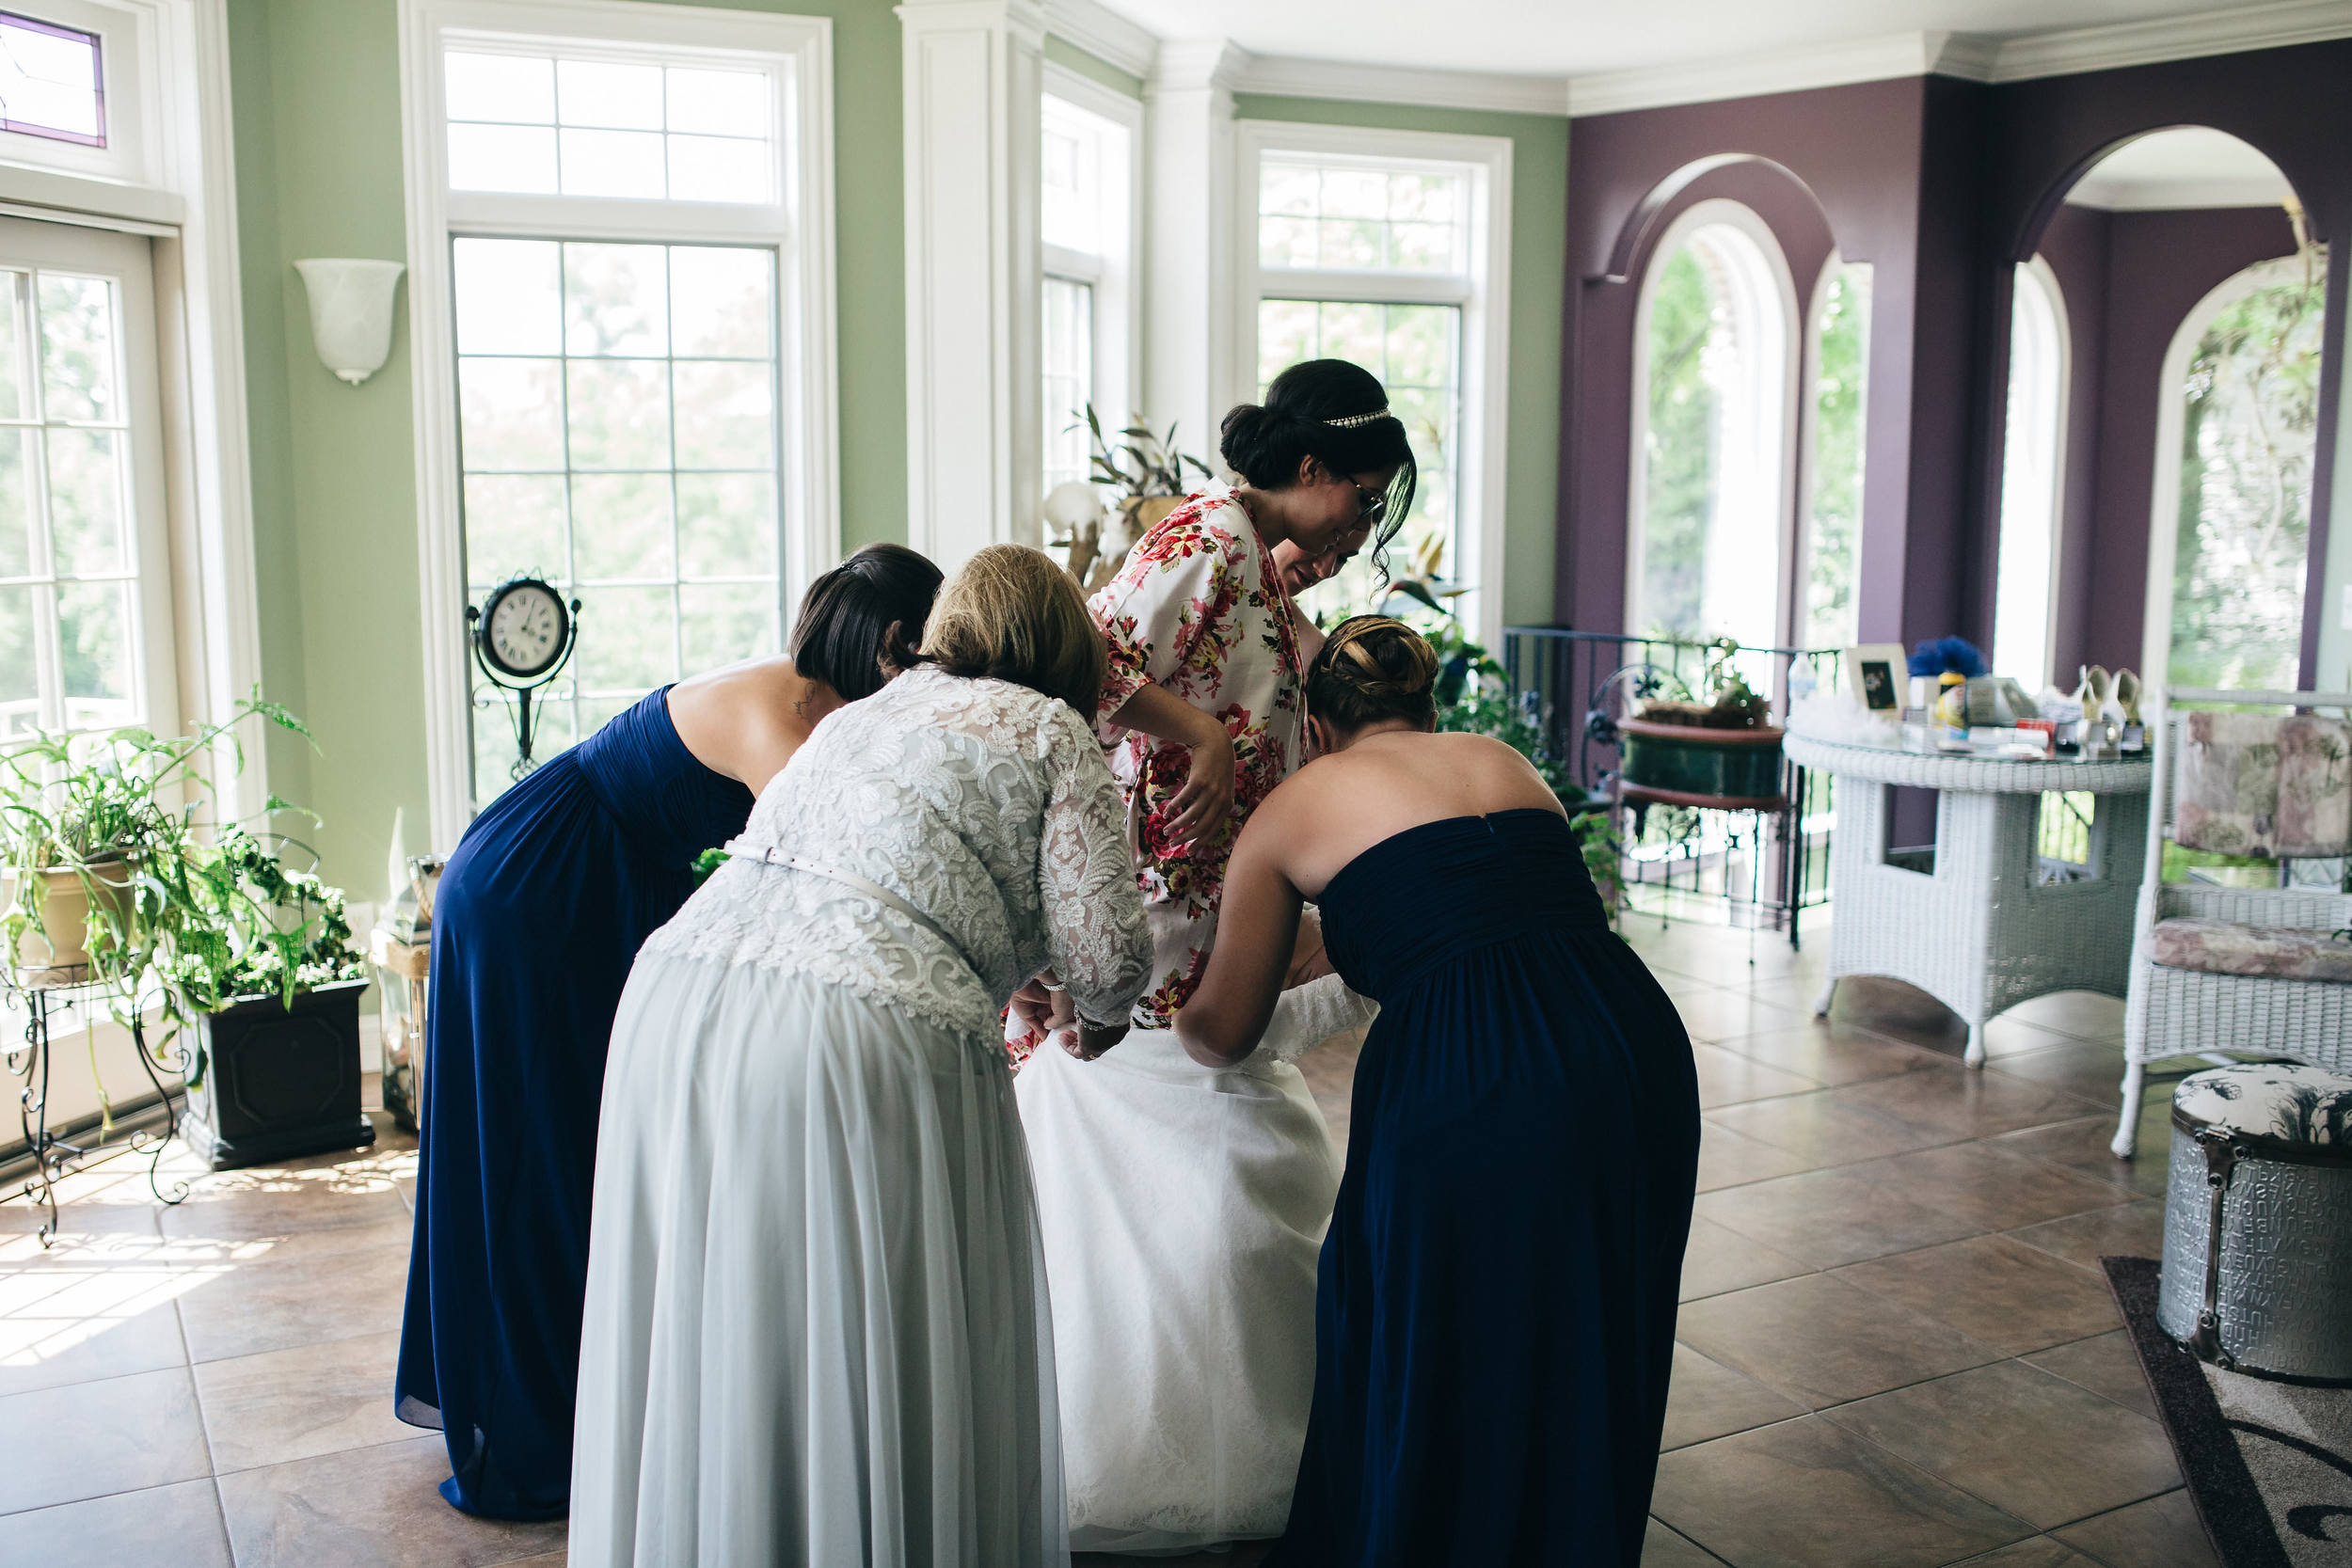 Bride stepping into wedding gown at home in Maumee, Ohio.